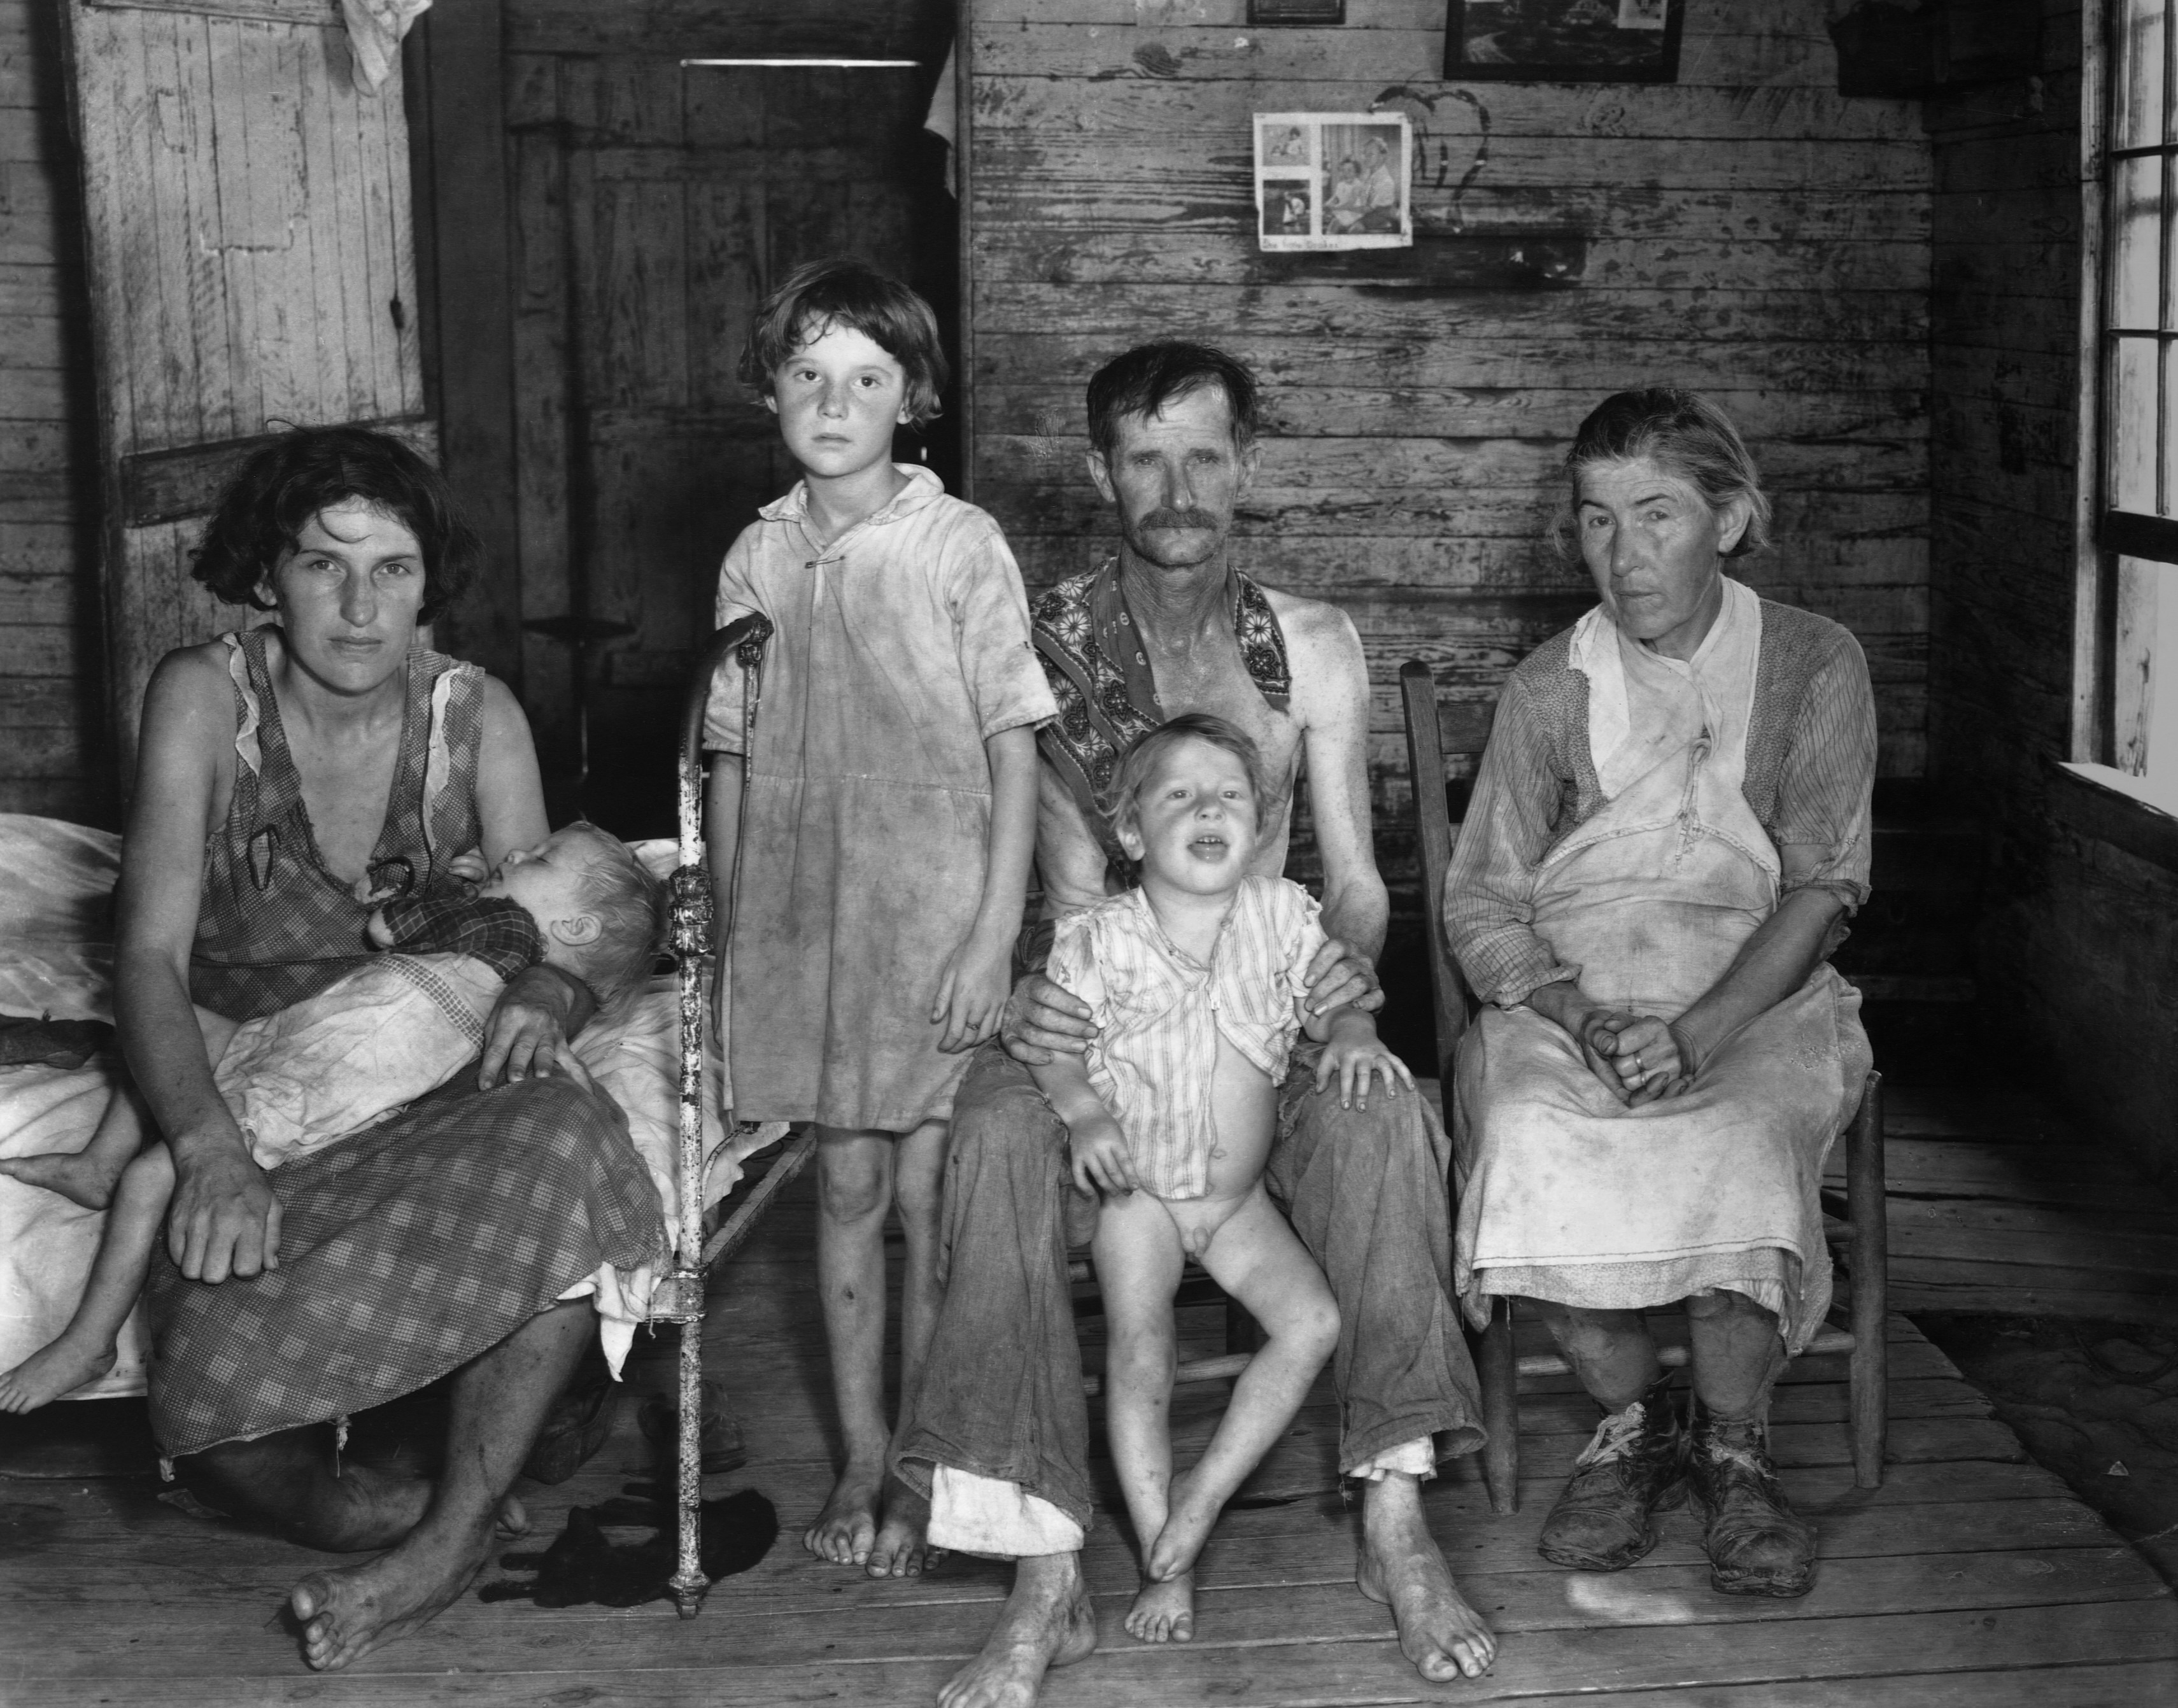 confronting southern poverty great depression essay How to start introduction reading your essay confronting southern poverty in the great depression the report on economic conditions of the south start.